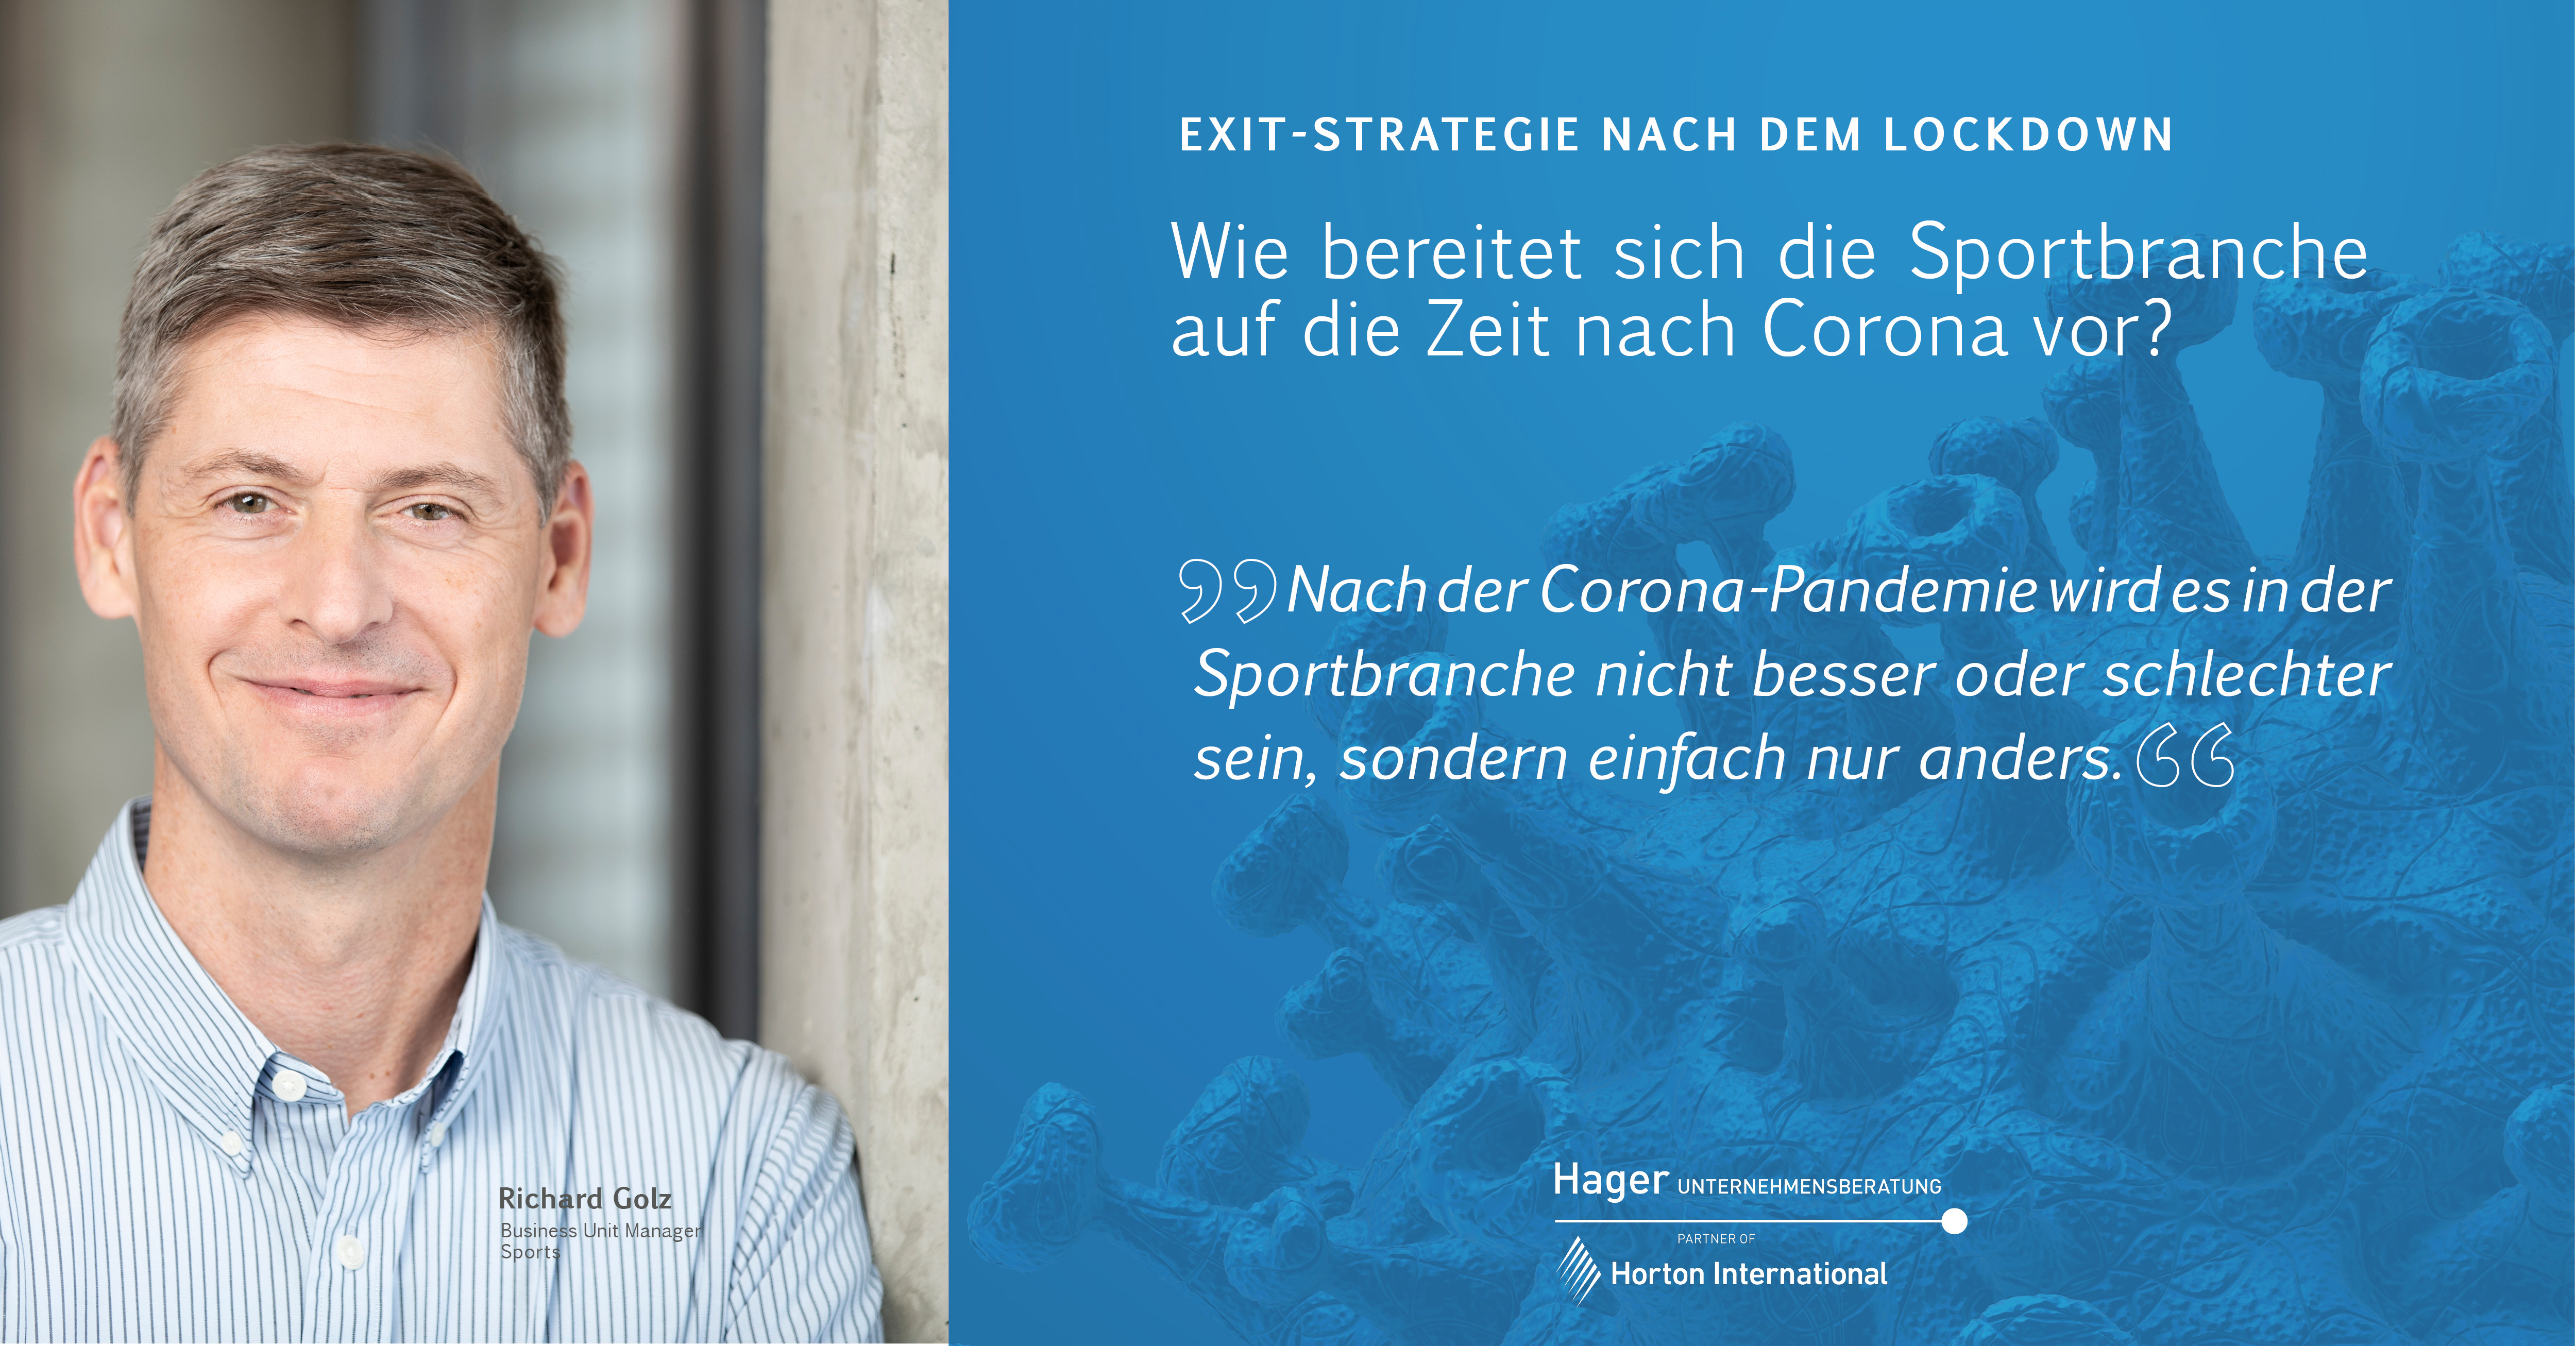 Exit-Strategie nach dem Lockdown - Sportbranche